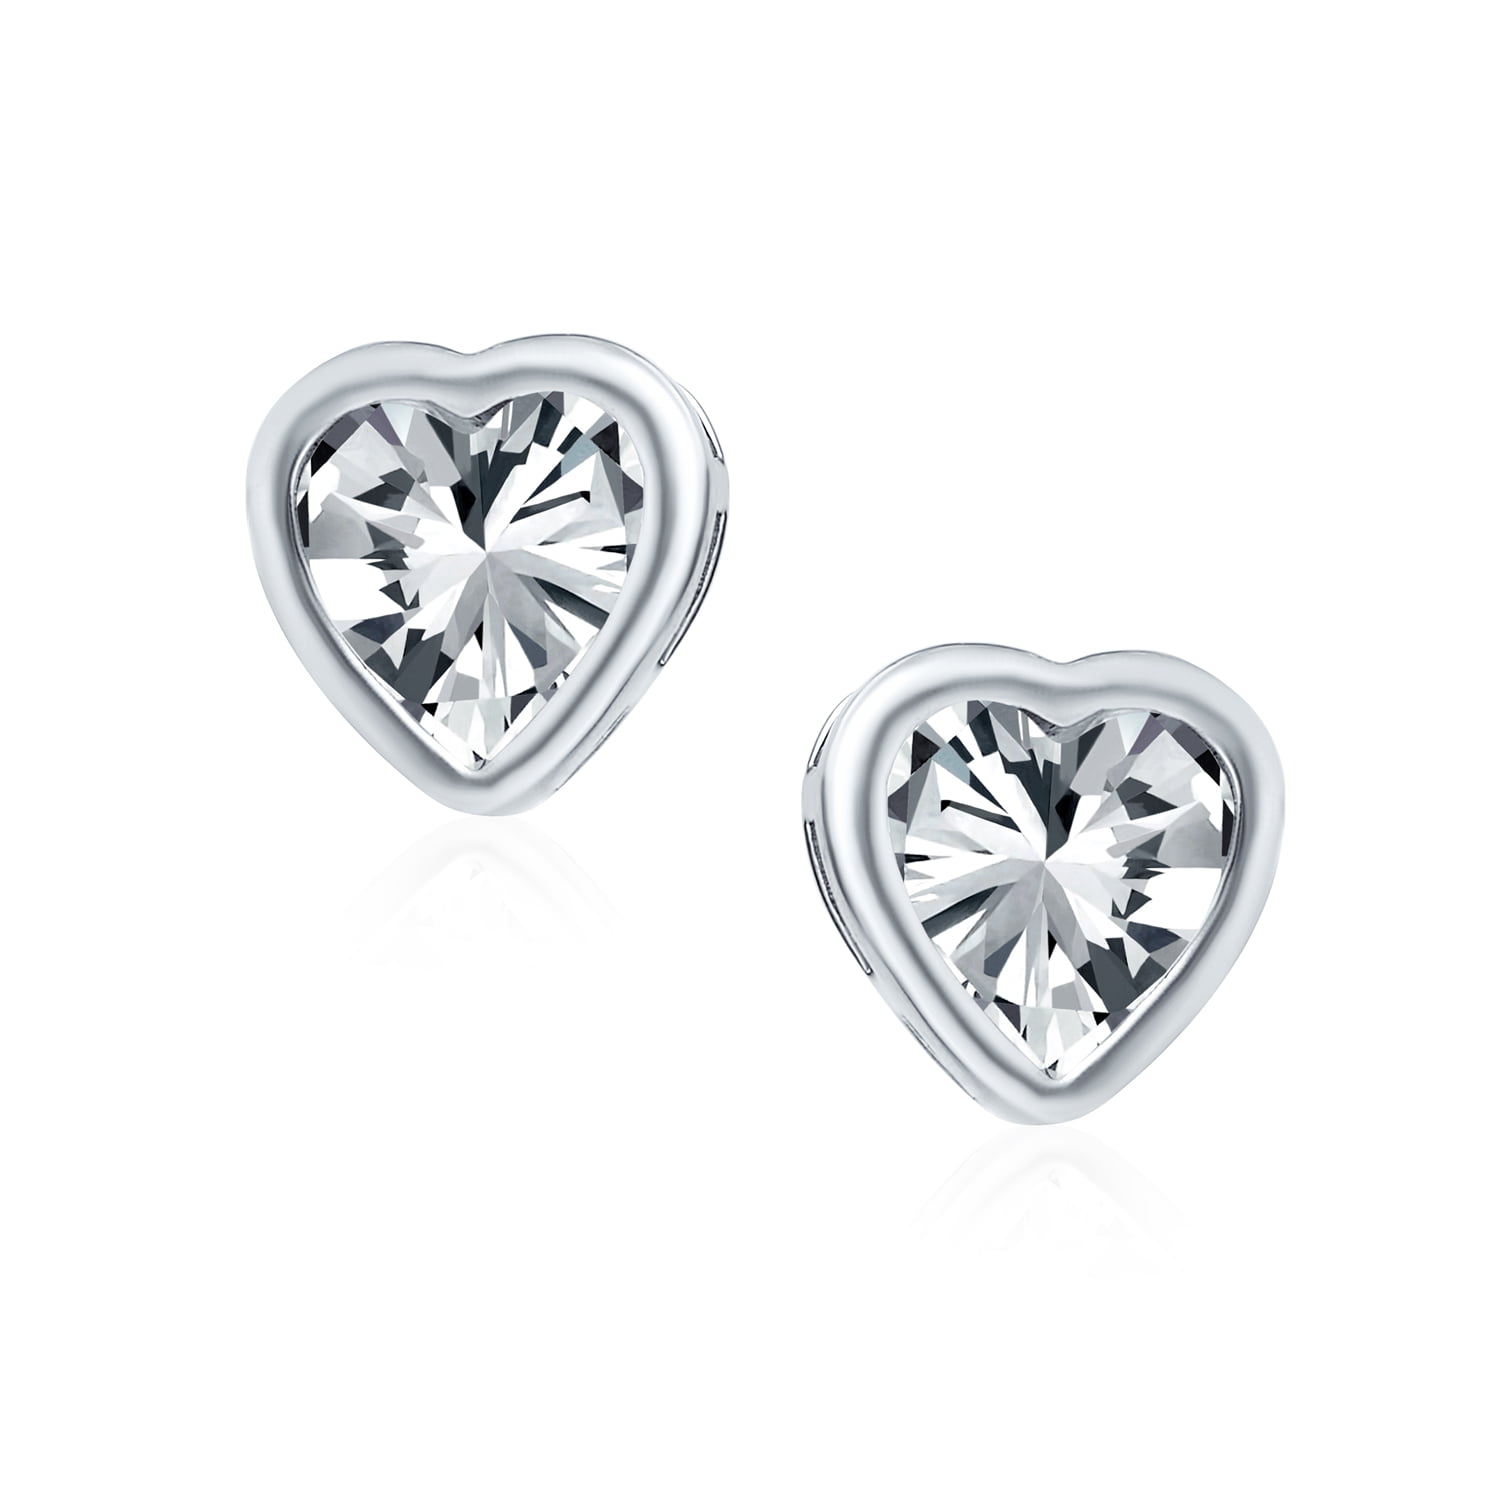 1CT Bezel Set Heart Shape AAA CZ Solitaire Stud Earrings For Women For Teen Rose Gold Plated 925 Sterling Silver 7MM